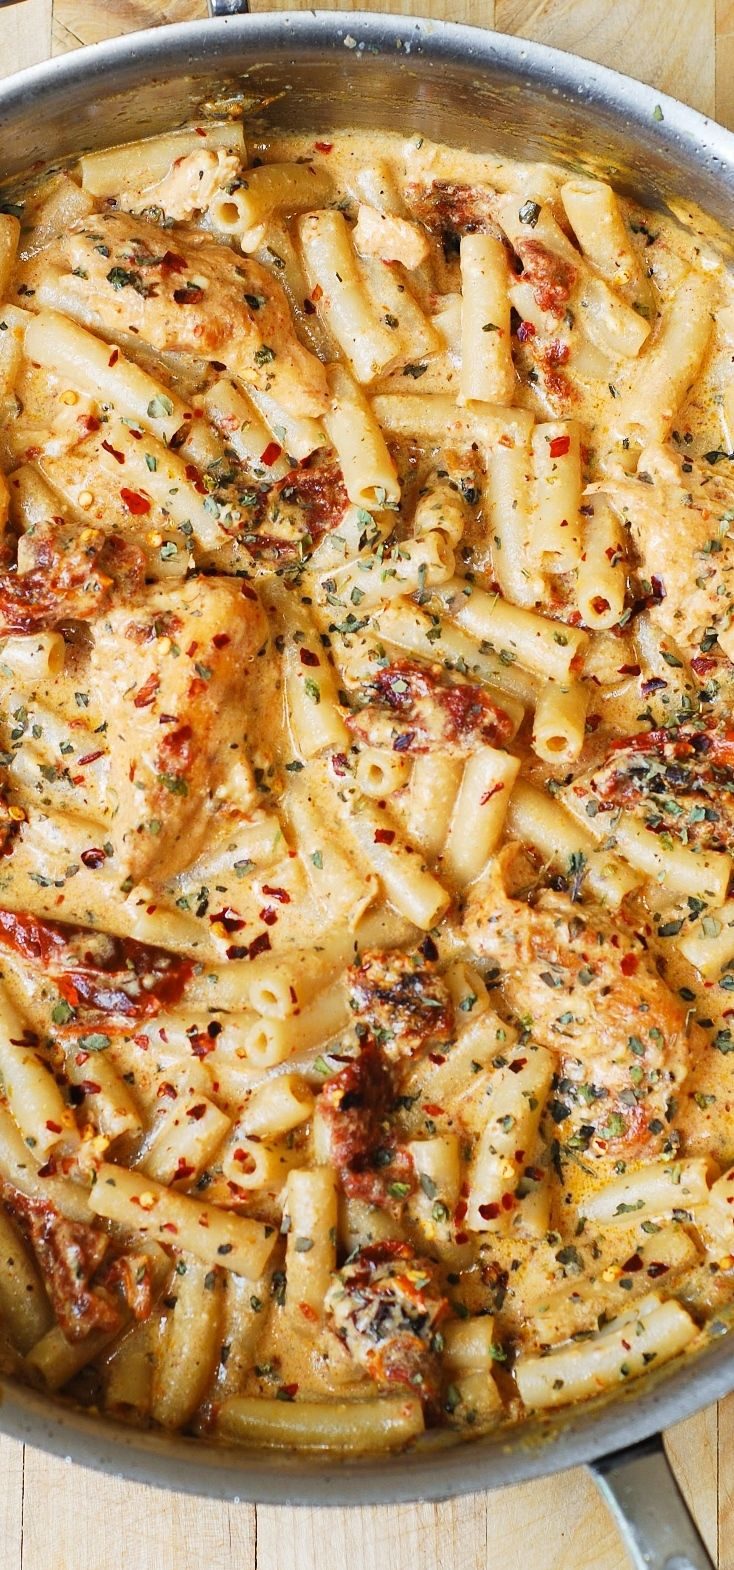 Chicken breast tenderloins sautéed with sun-dried tomatoes and penne pasta in a creamy mozzarella cheese sauce seasoned with basil, crushed red pepper flakes. If you love pasta, if you love Italian food – you'll LOVE this recipe! (gluten free option: gf Tinkyada brown rice pasta used)